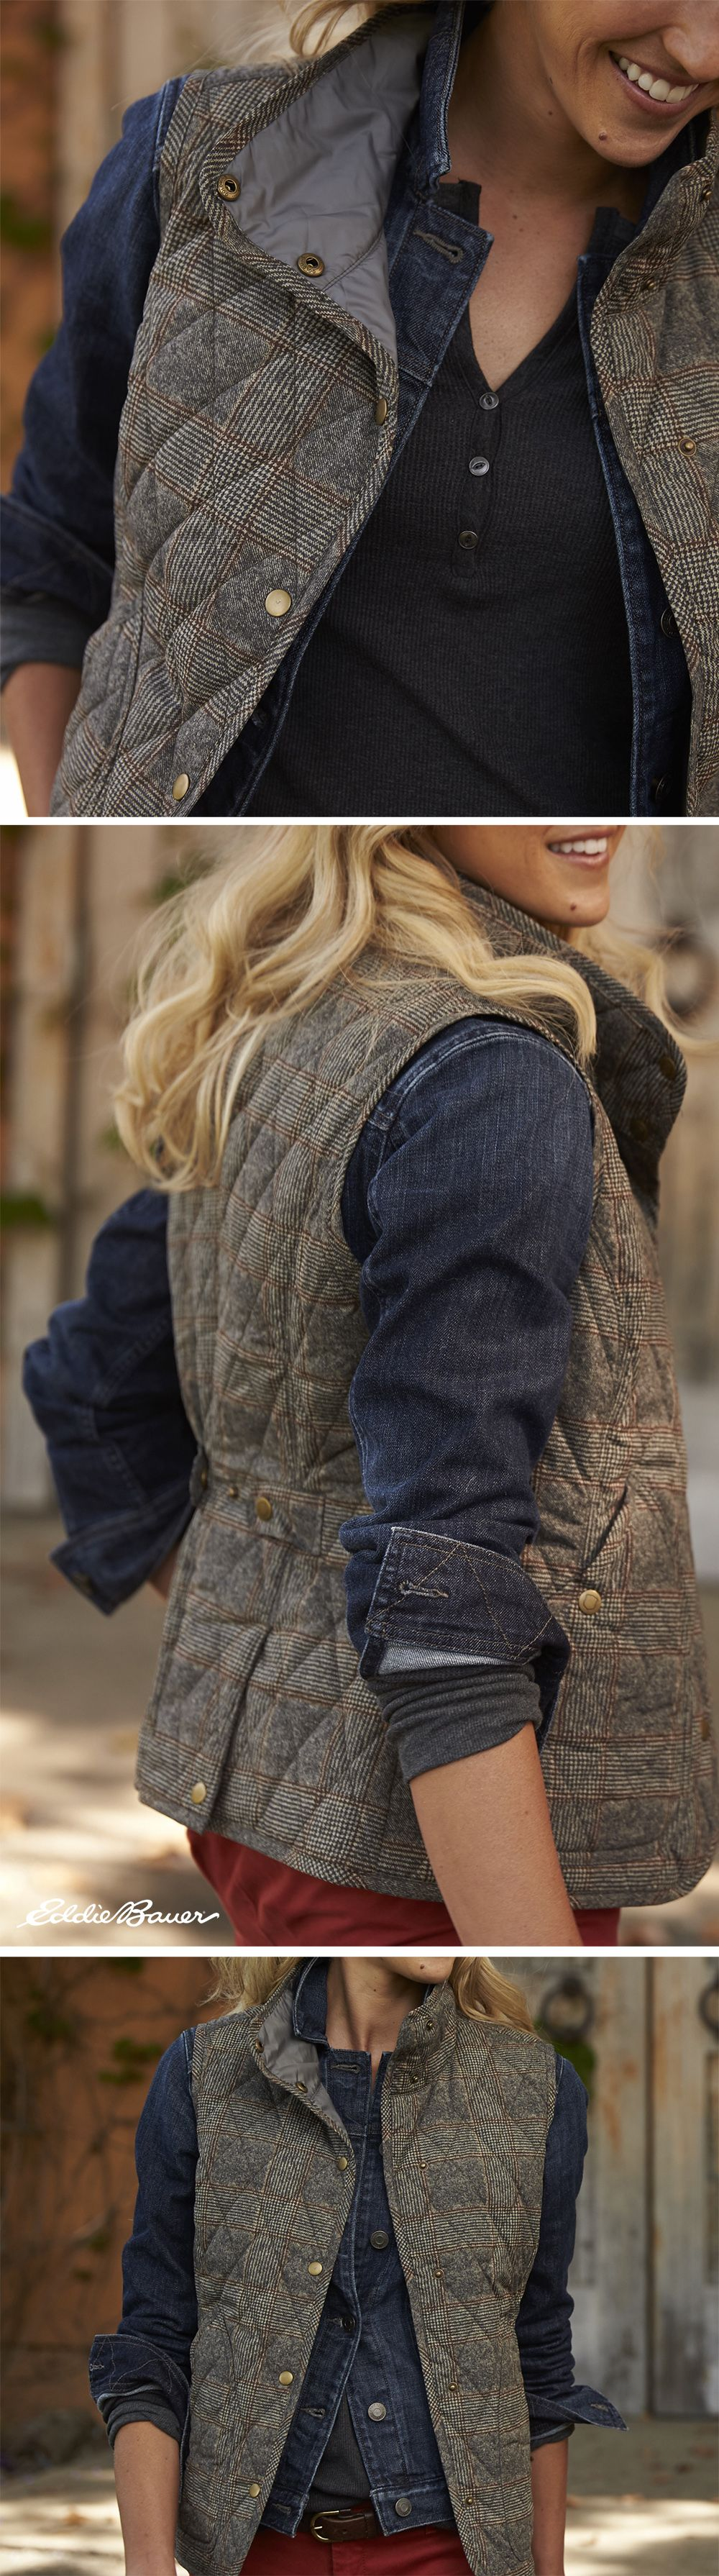 The Year Round Vest Plaid Light Enough For Spring And